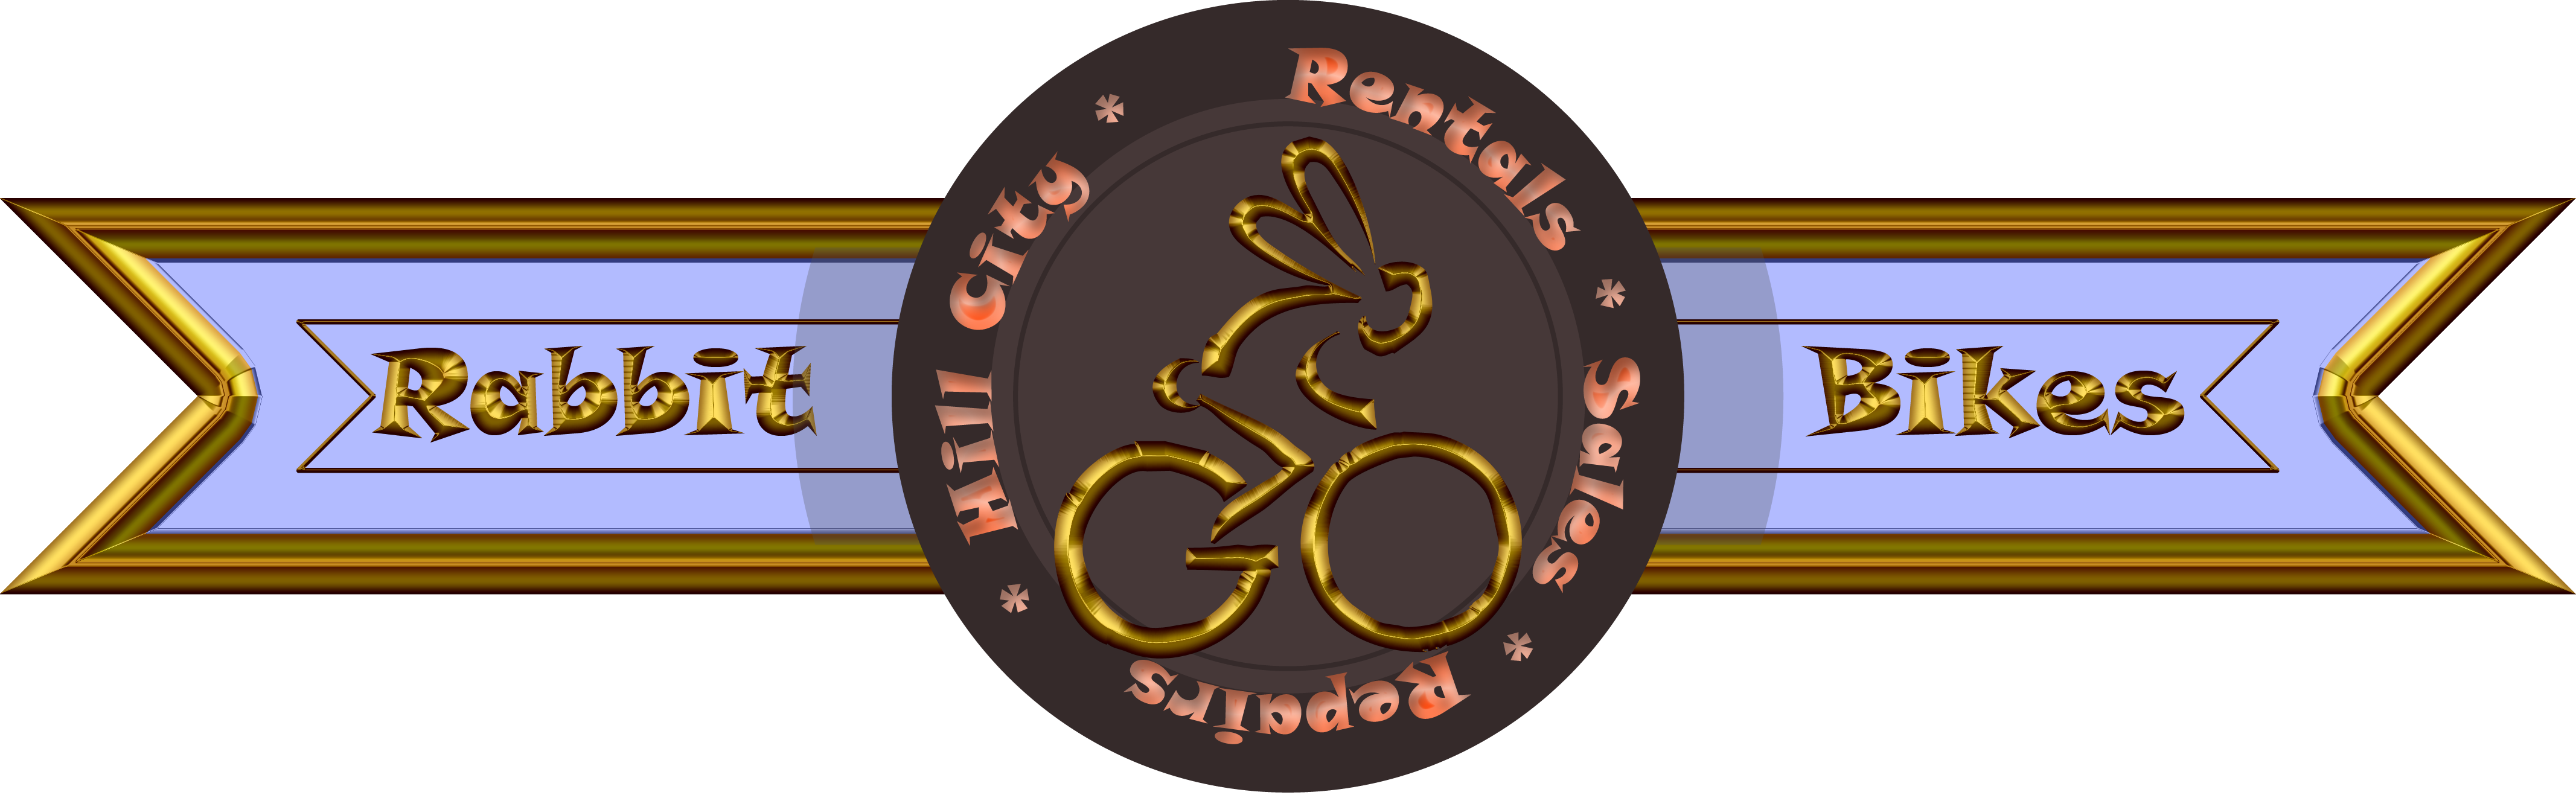 The Rabbit Bicycles Banner